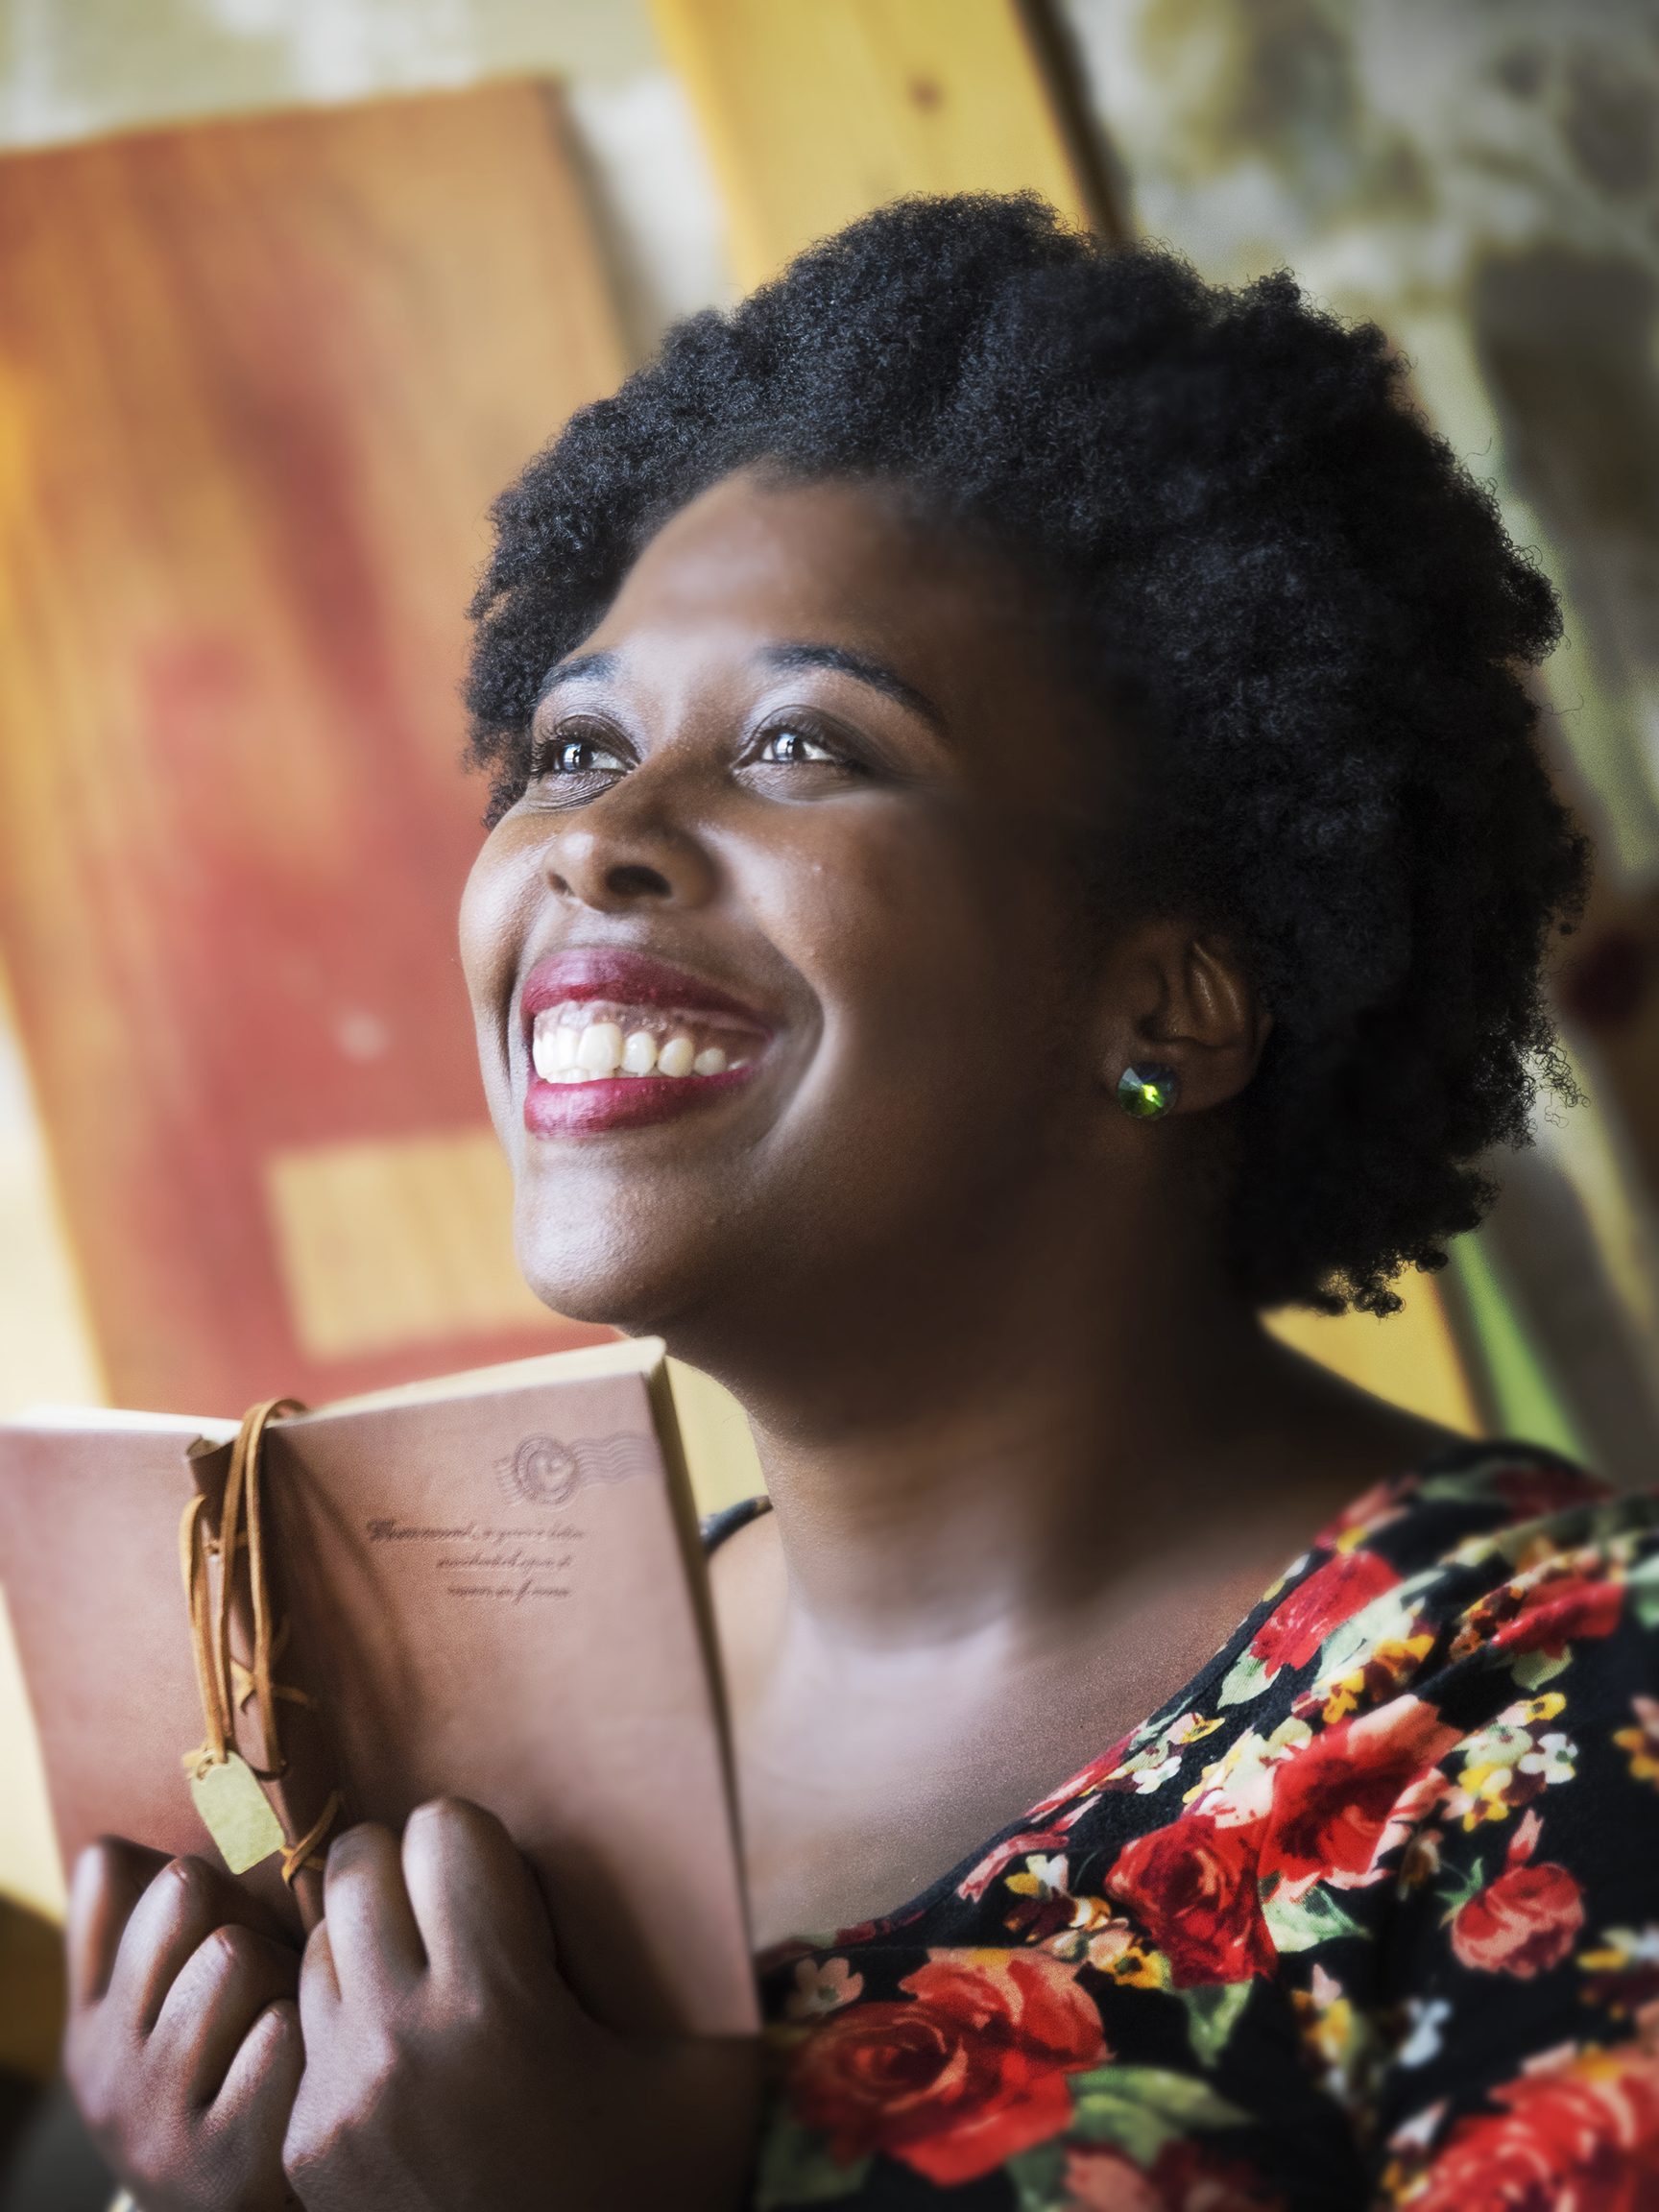 Noelle Brooks, marketing storyteller, is smiling upwards while holding a brown leather journal in front of her.